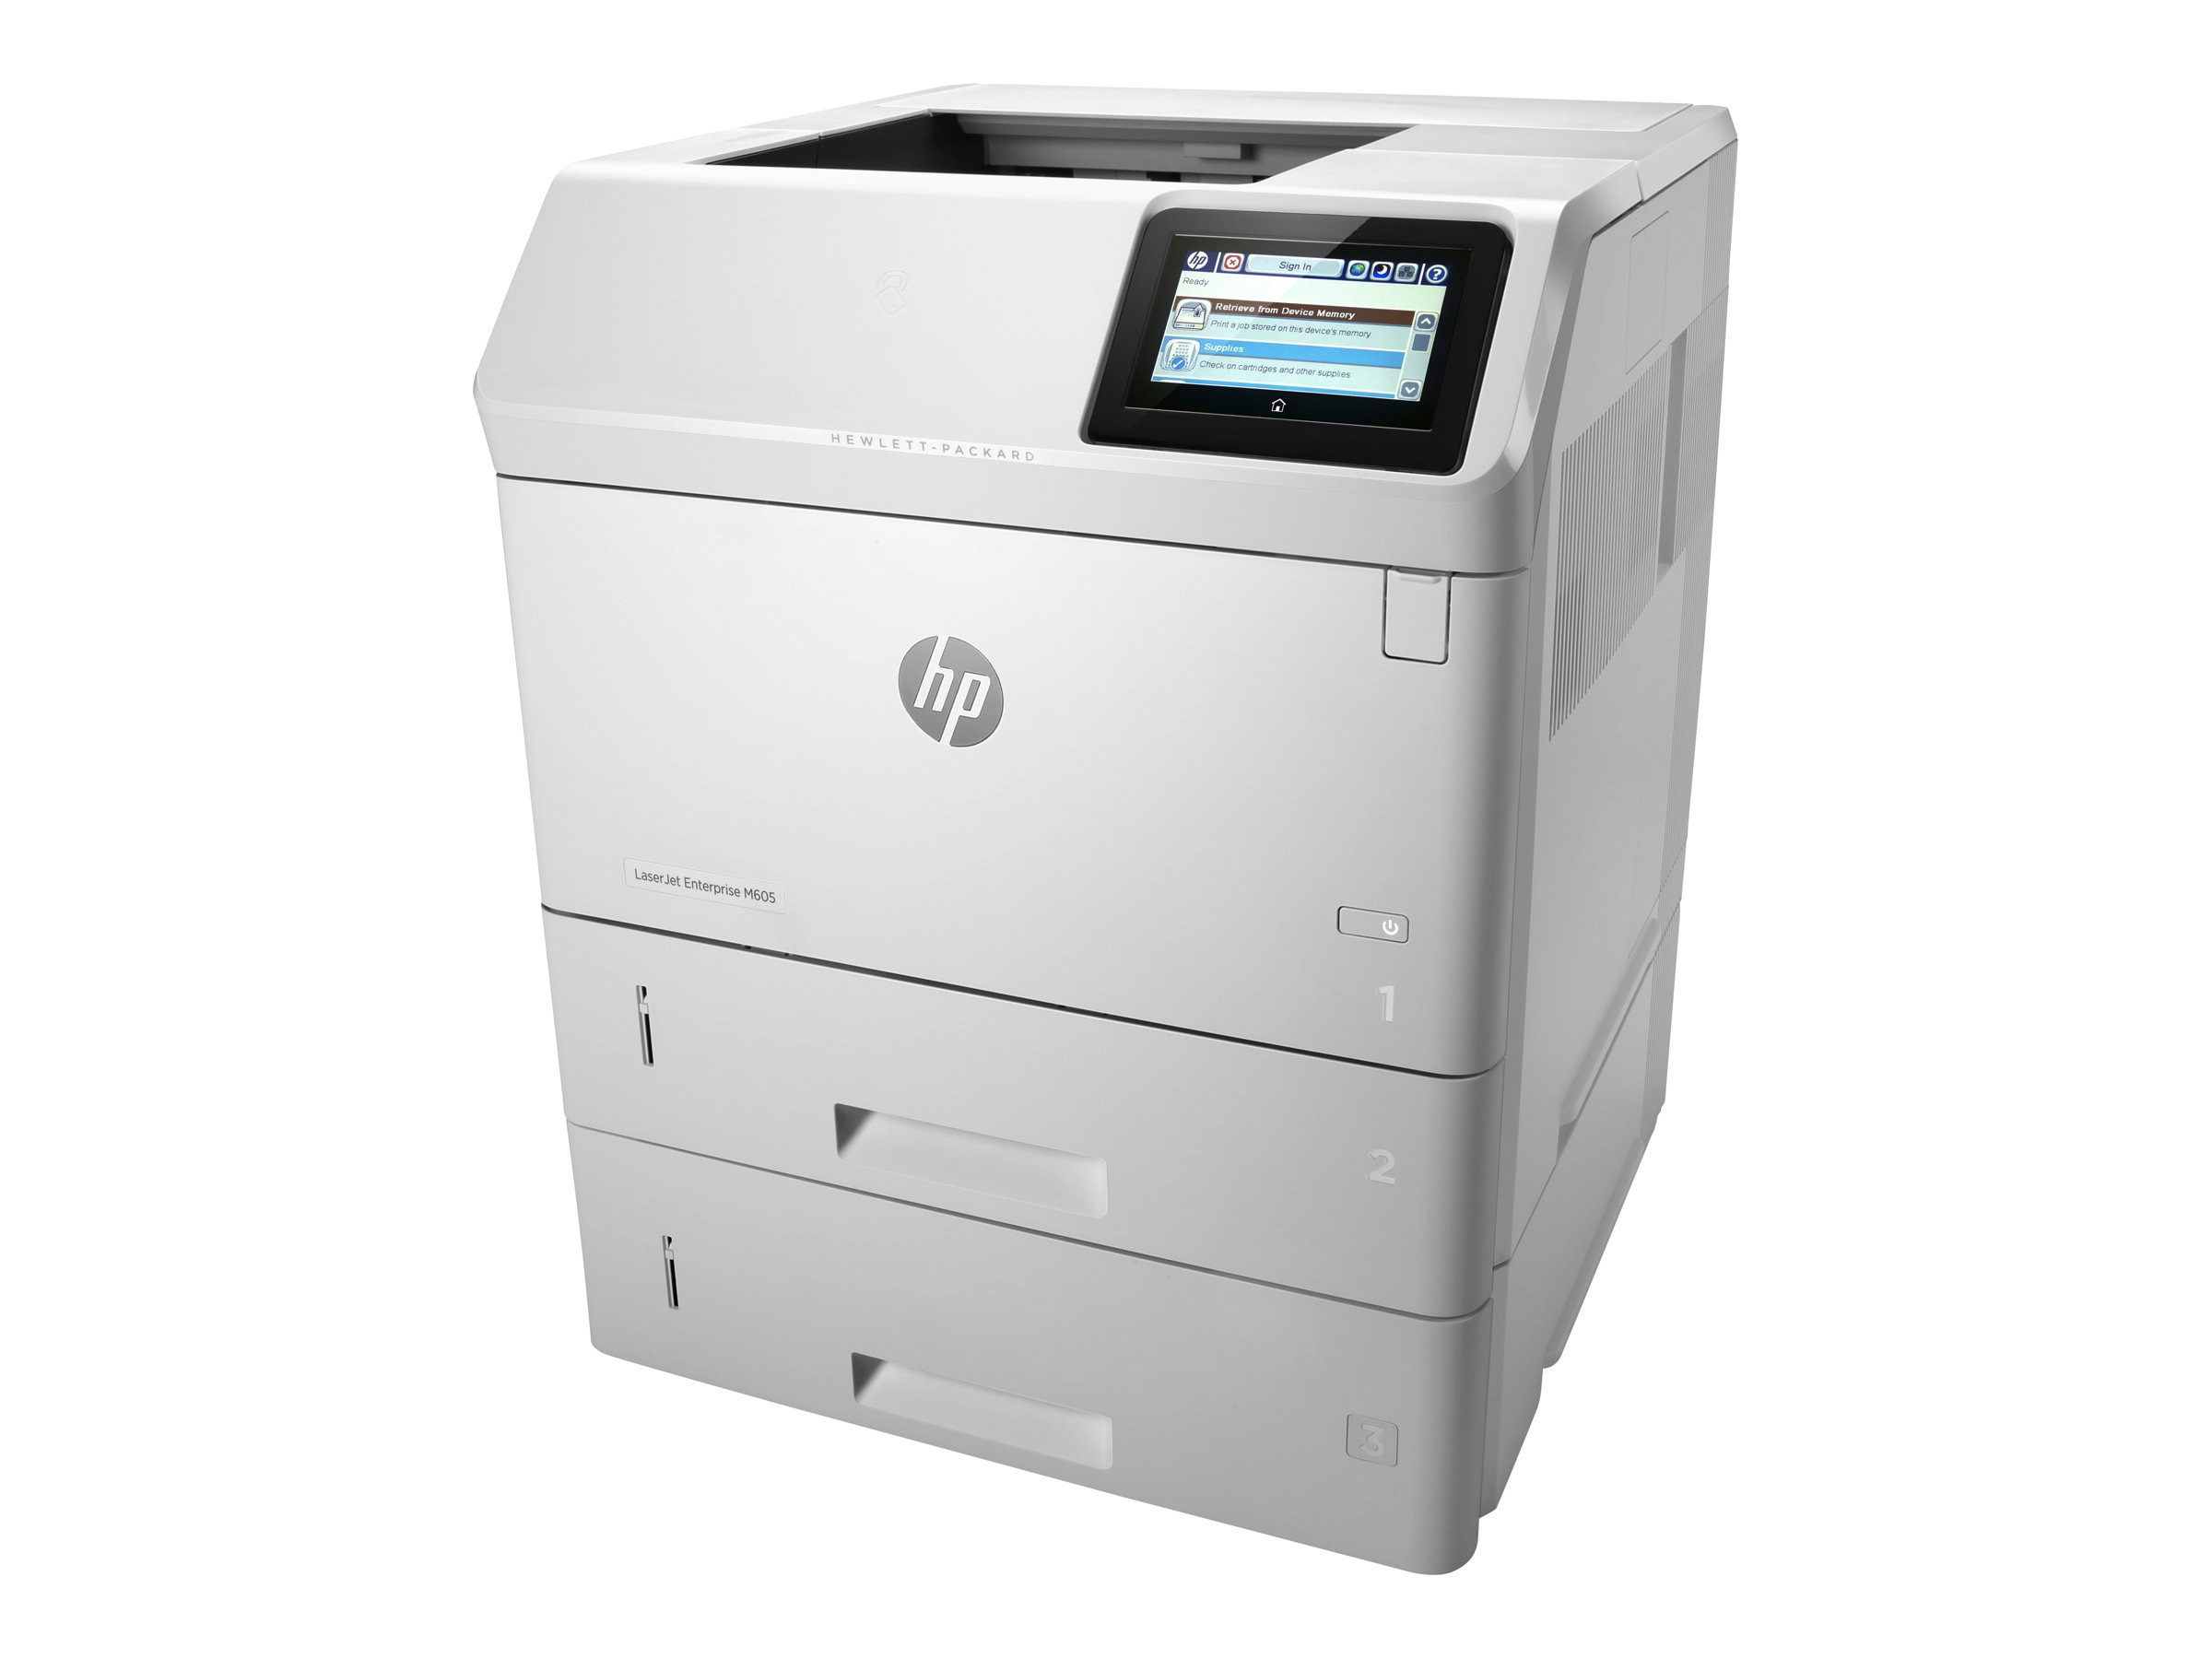 HP LaserJet Enterprise M605x Printer, E6B71A#BGJ, 18894268, Printers - Laser & LED (monochrome)